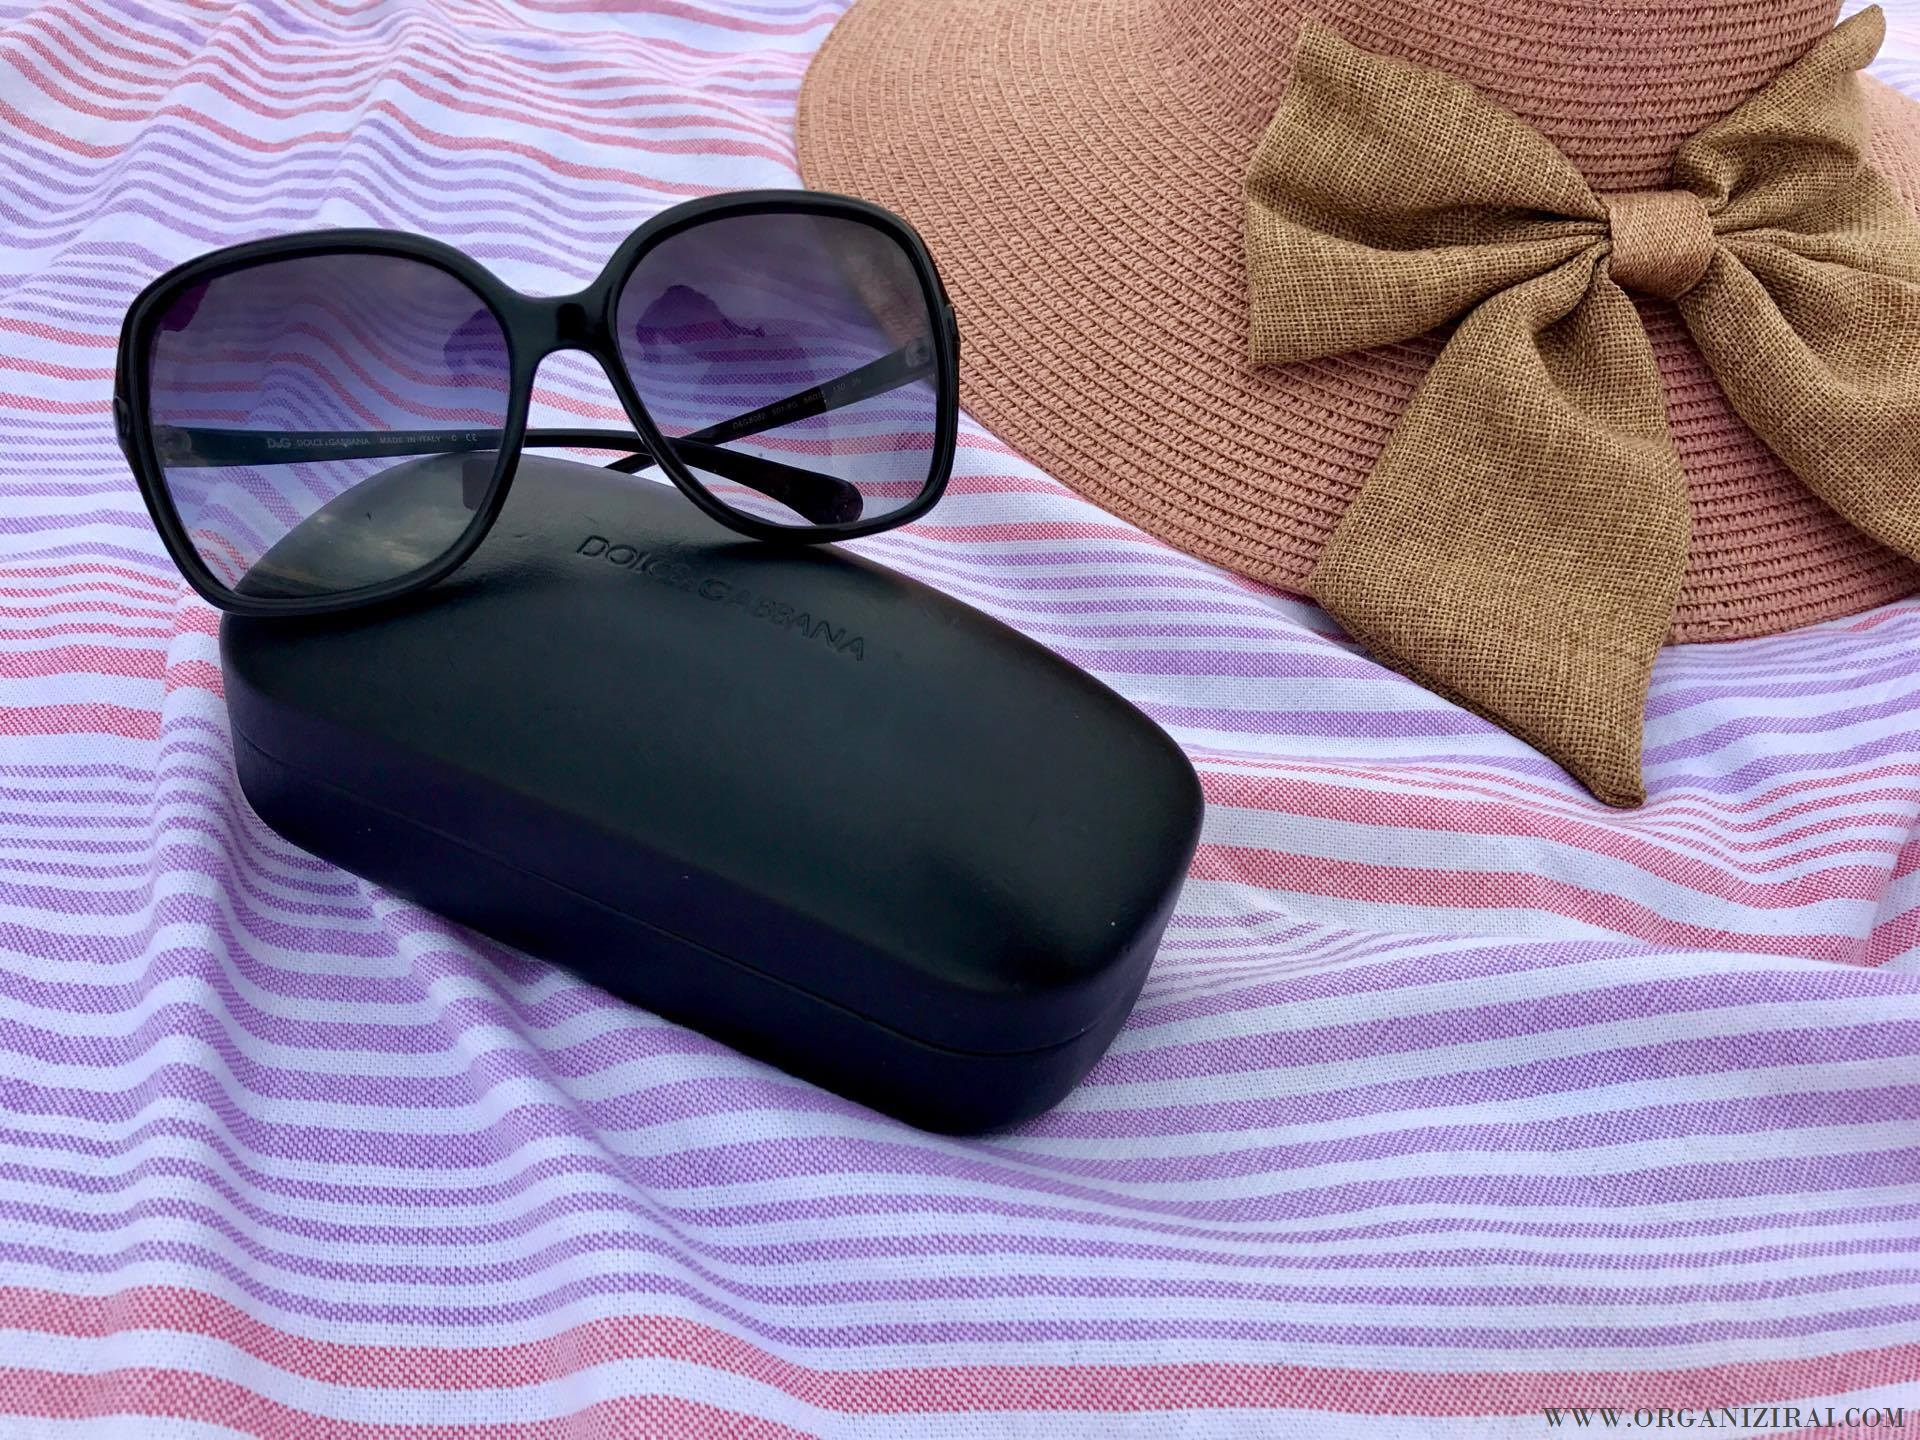 sunglasses-dolce-gabbana-d&g-whats-in-my-beach-bag-organizing-blog-bulgarian-blogger-summer-bag-organizirai.com